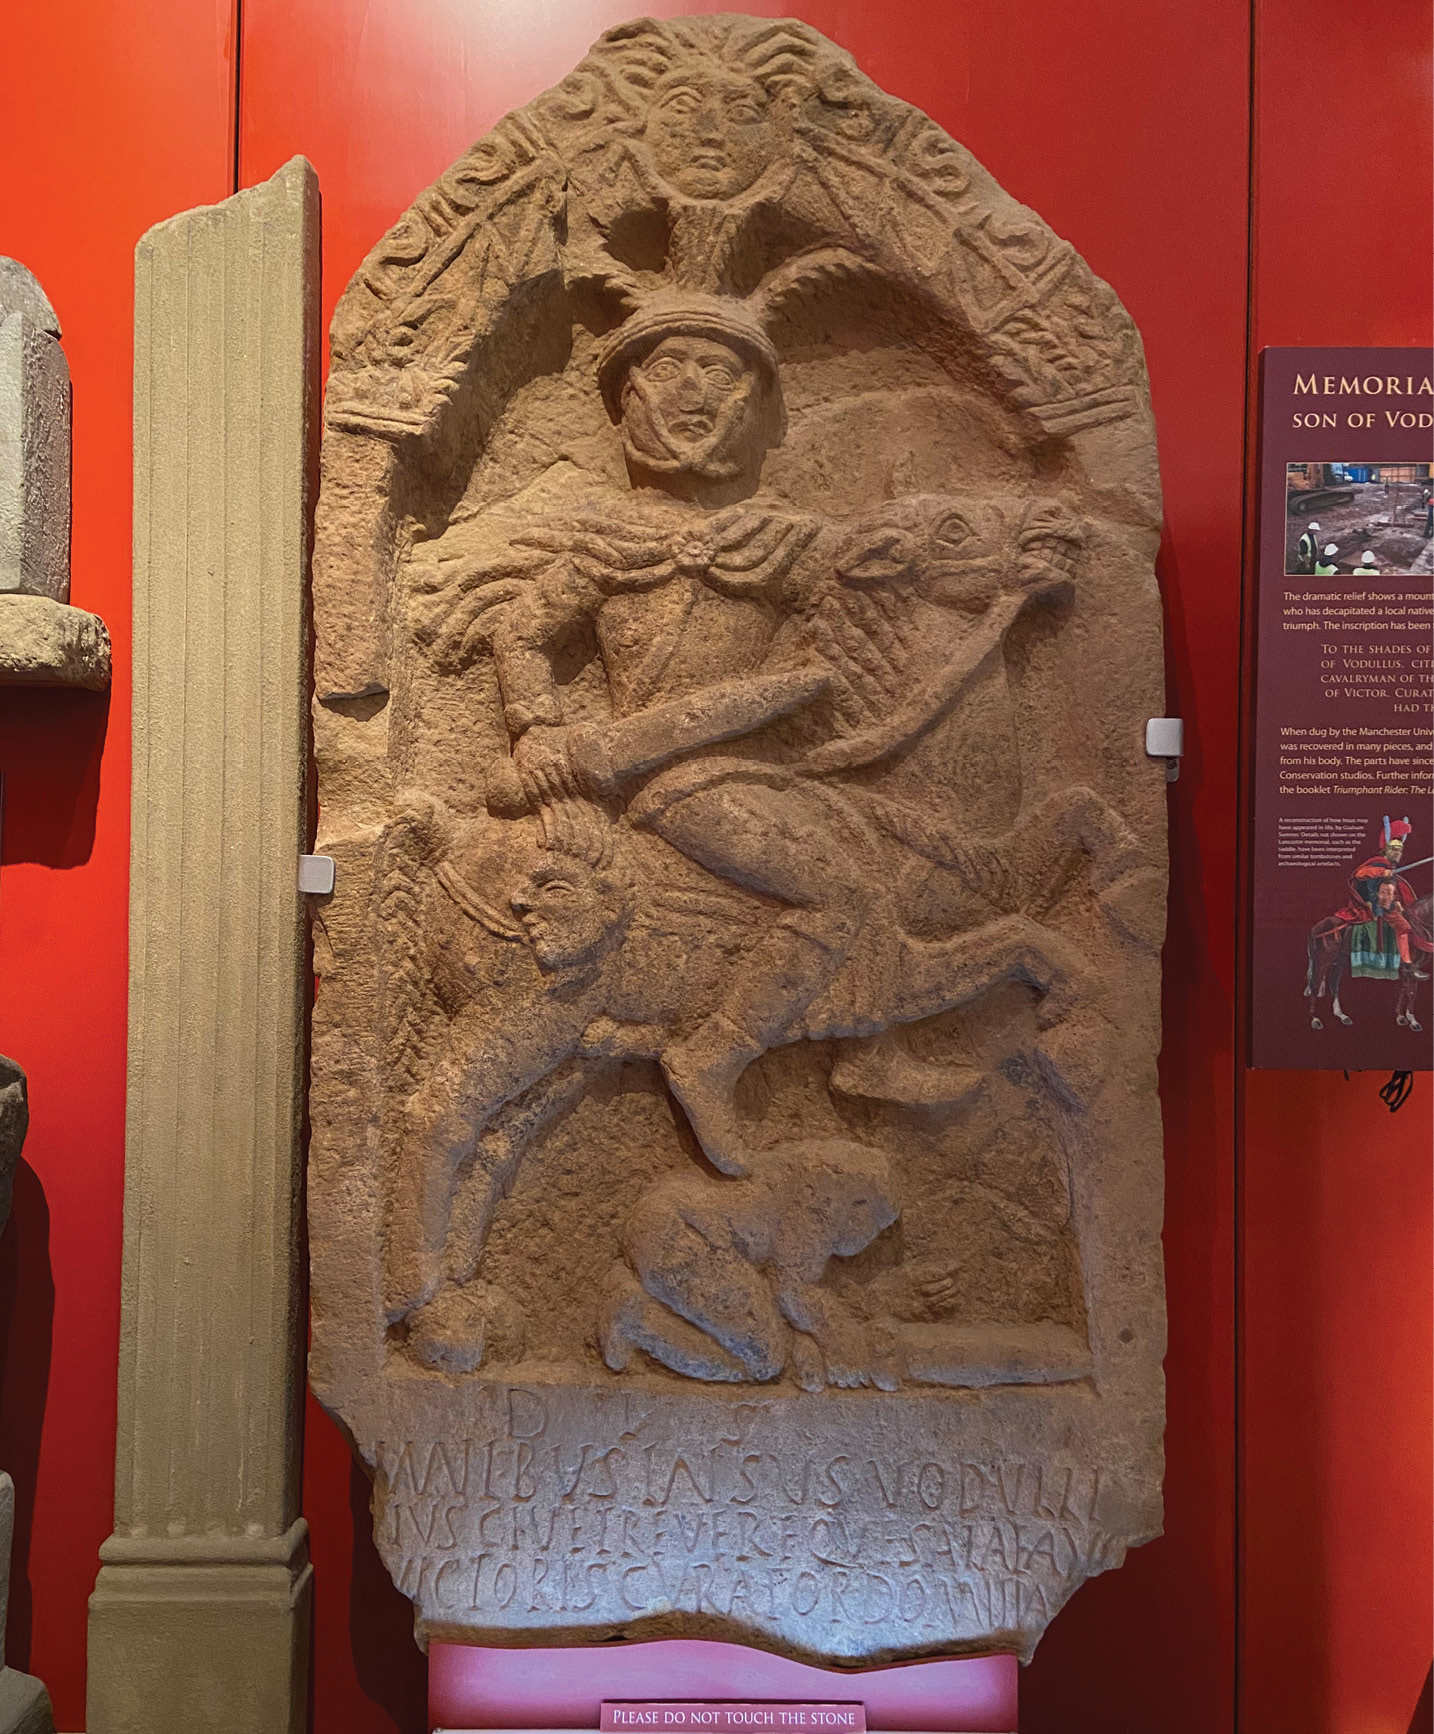 ABOVE This probably 1st-century memorial commemorates Insus, a Roman cavalry officer, and was found in Lancaster. Now housed by Lancaster City Museum, it highlights how hostile Roman encounters with indigenous communities could be.